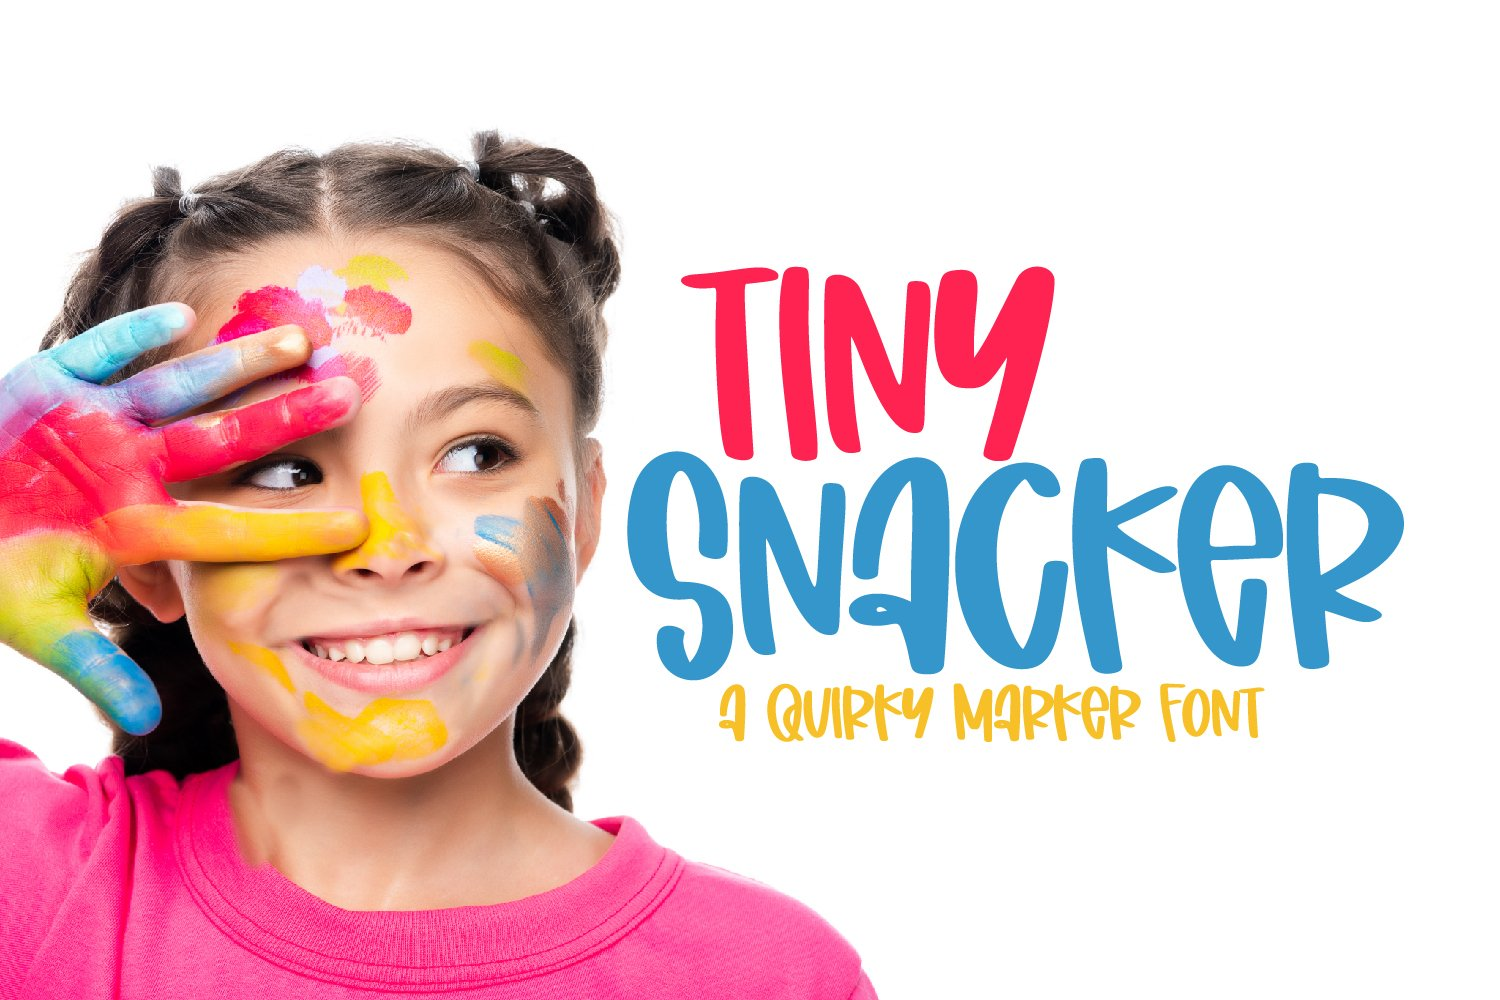 Tiny Snacker - A Quirky Marker Font example image 1